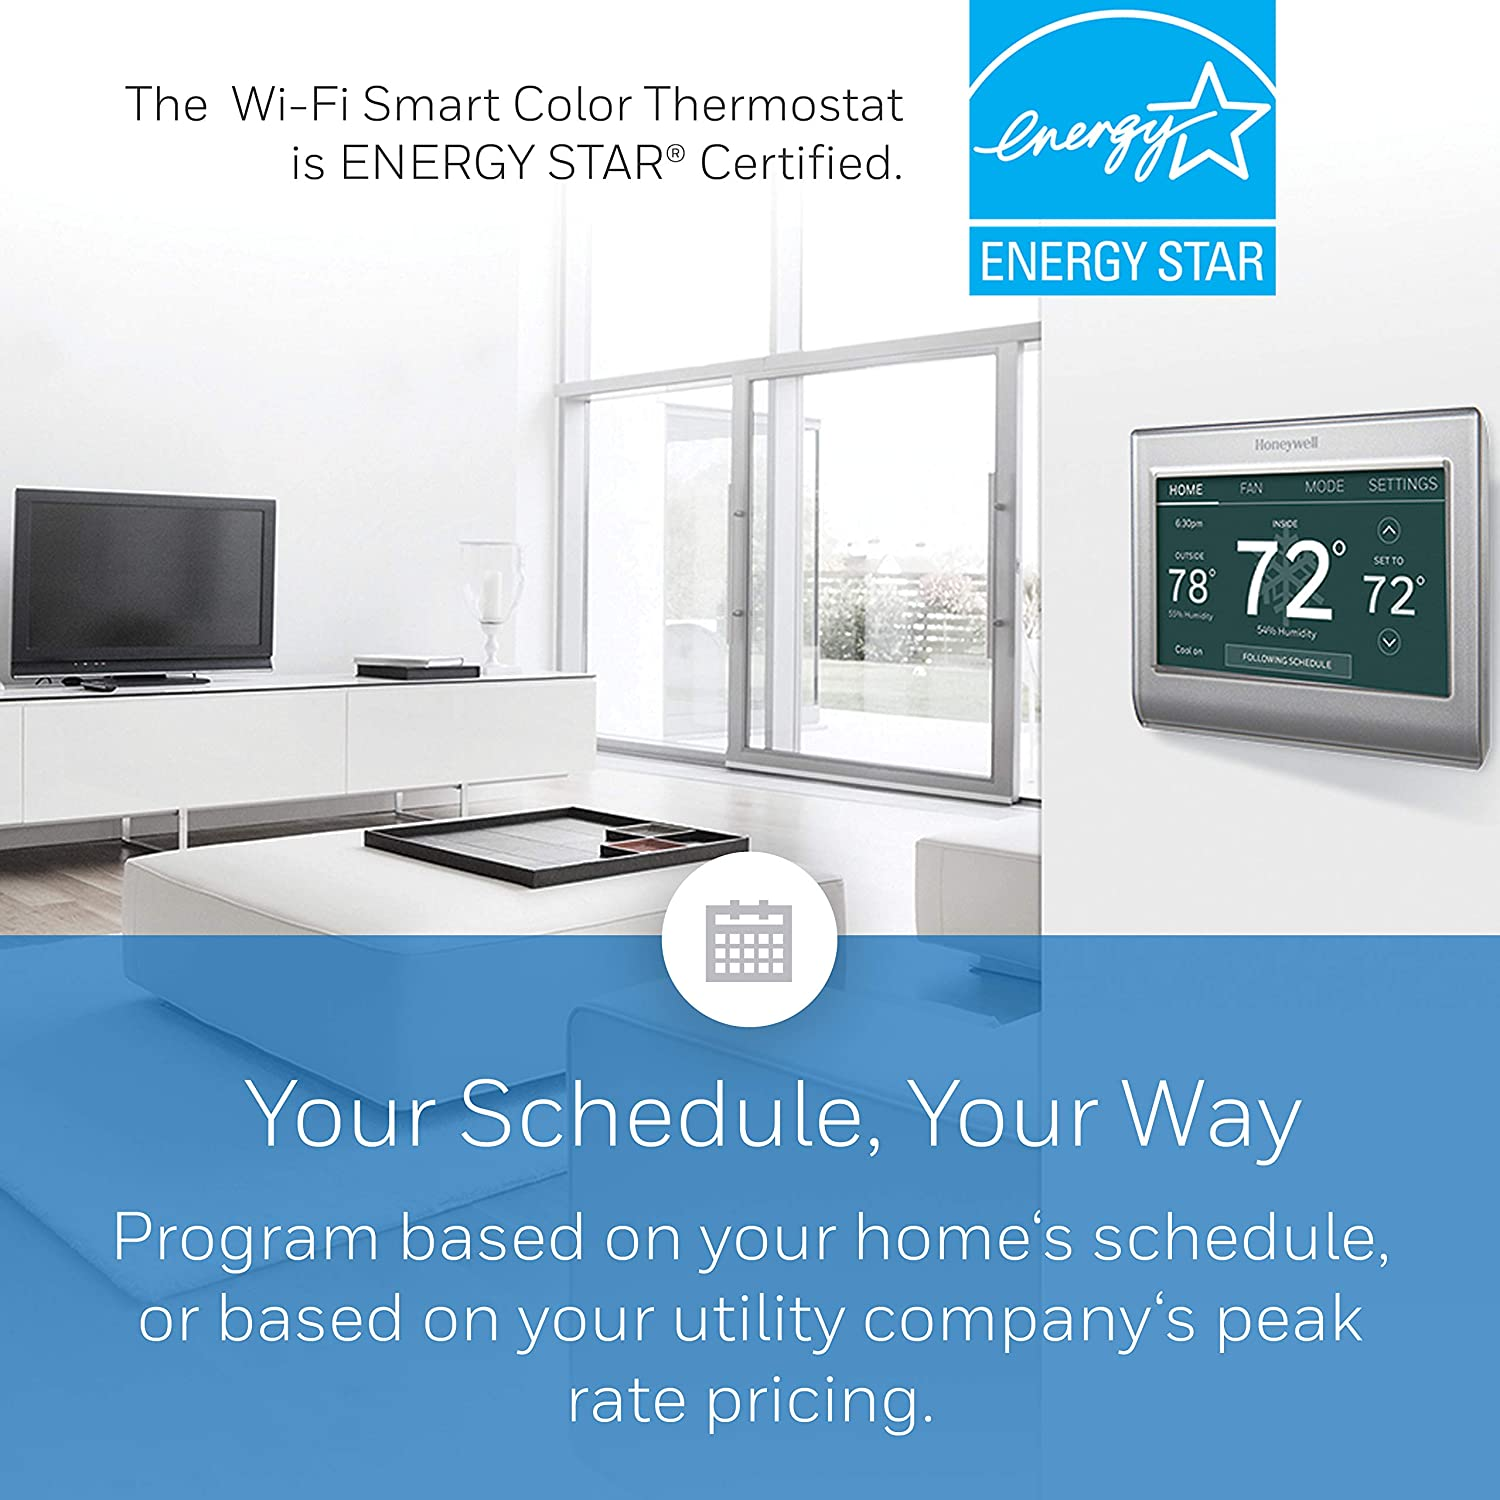 Honeywell Home Wi-Fi Smart Color Programmable Thermostat In-app Programming RTH9585WF1004 Easy Installation, Alexa and Apple Home Enabled Personalized Color Display Customizable Programming